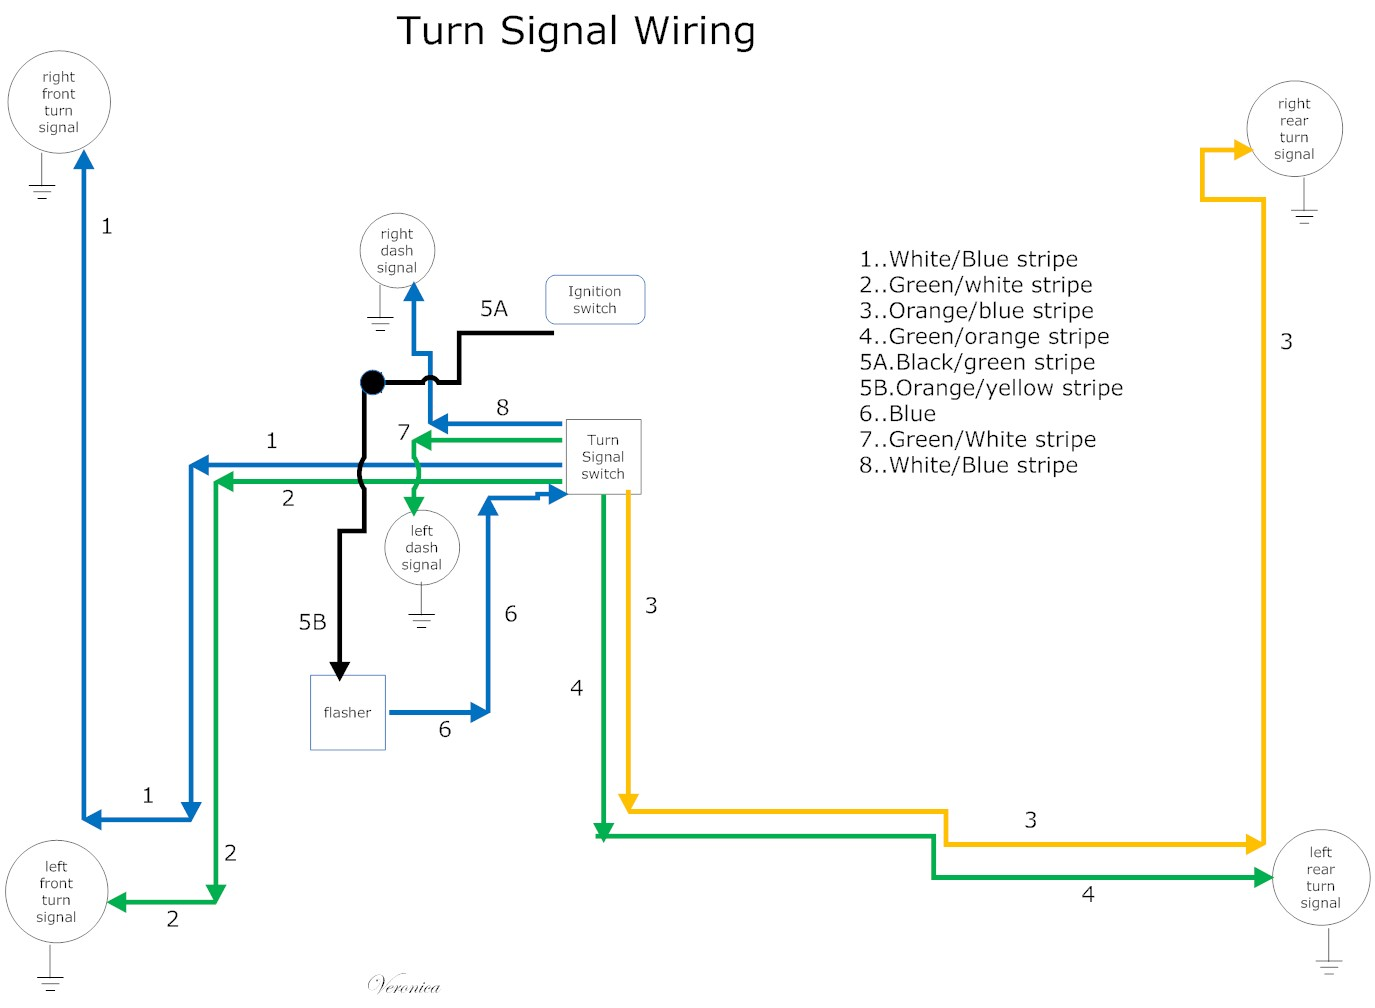 DIAGRAM] Blazer Turn Signal Wiring Diagram FULL Version HD Quality Wiring  Diagram - STRUCTUREDSETTLEME.NIBERMA.FRstructuredsettleme.niberma.fr